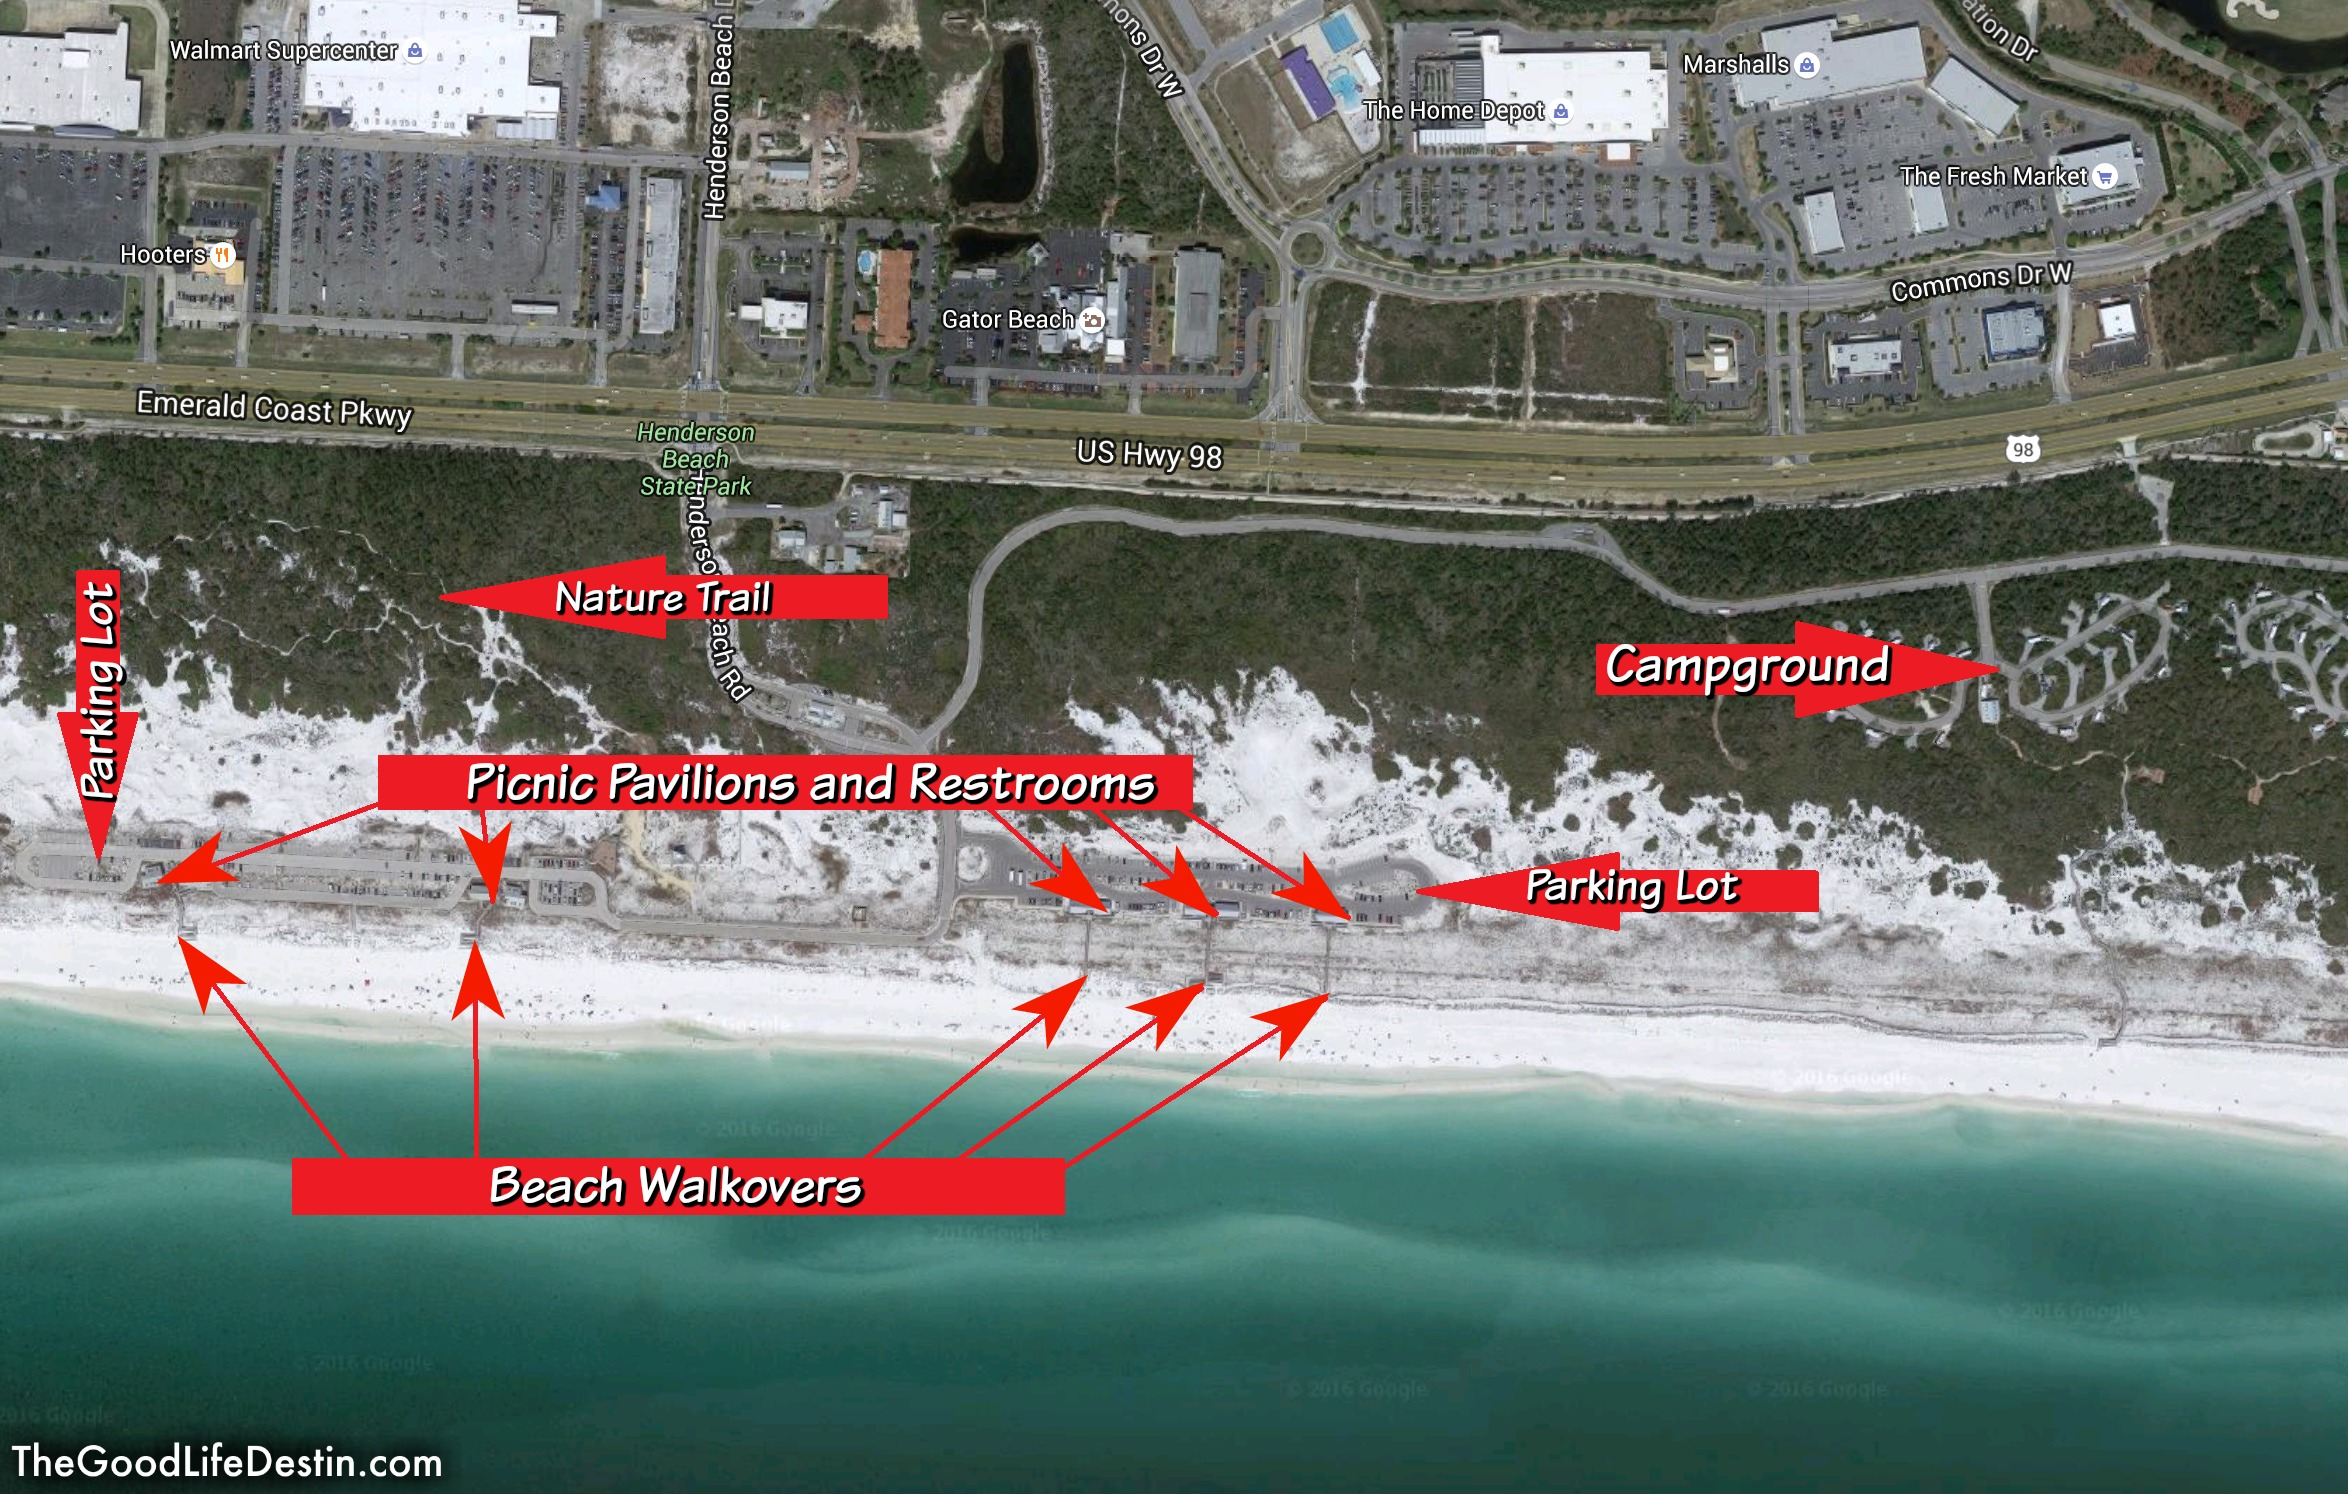 Find Your Perfect Beach In Destin Florida The Good Life Destin - Florida map state parks